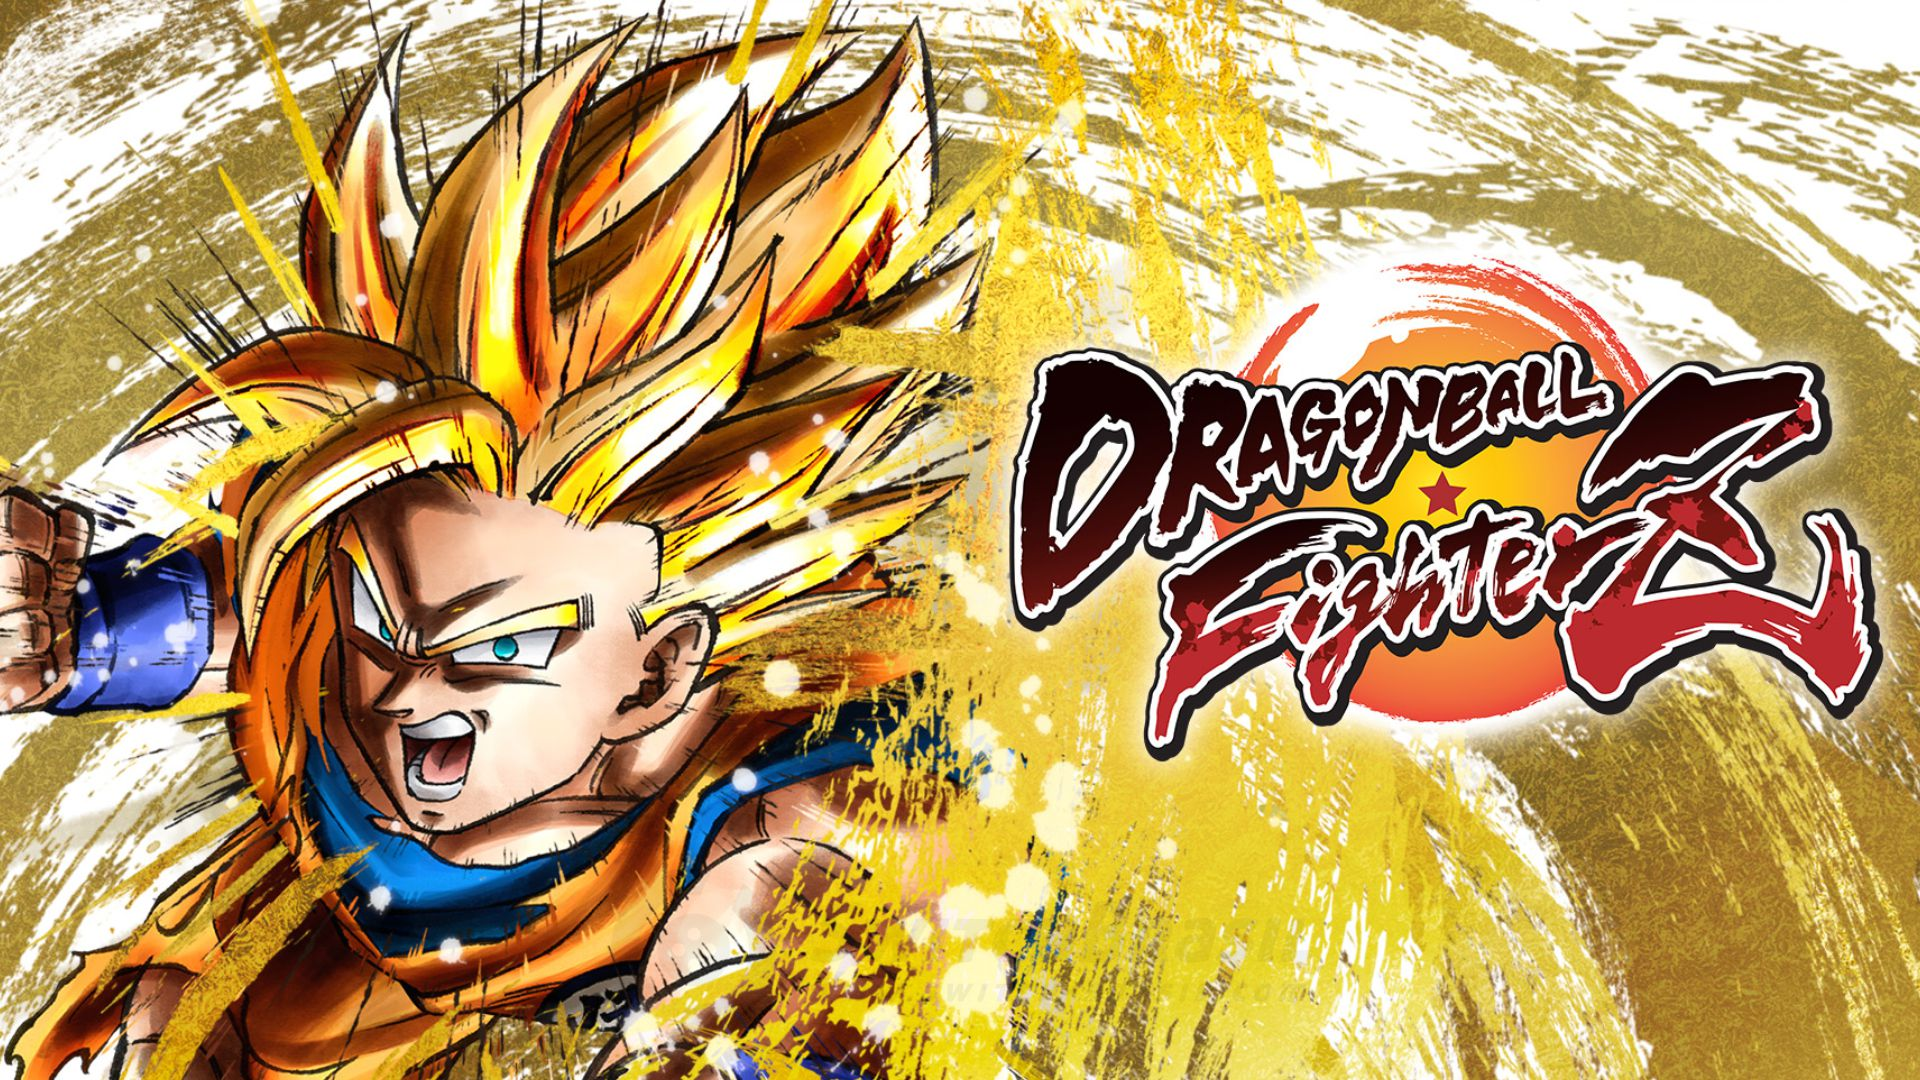 Dragon ball fighterz game download for ppsspp windows 10